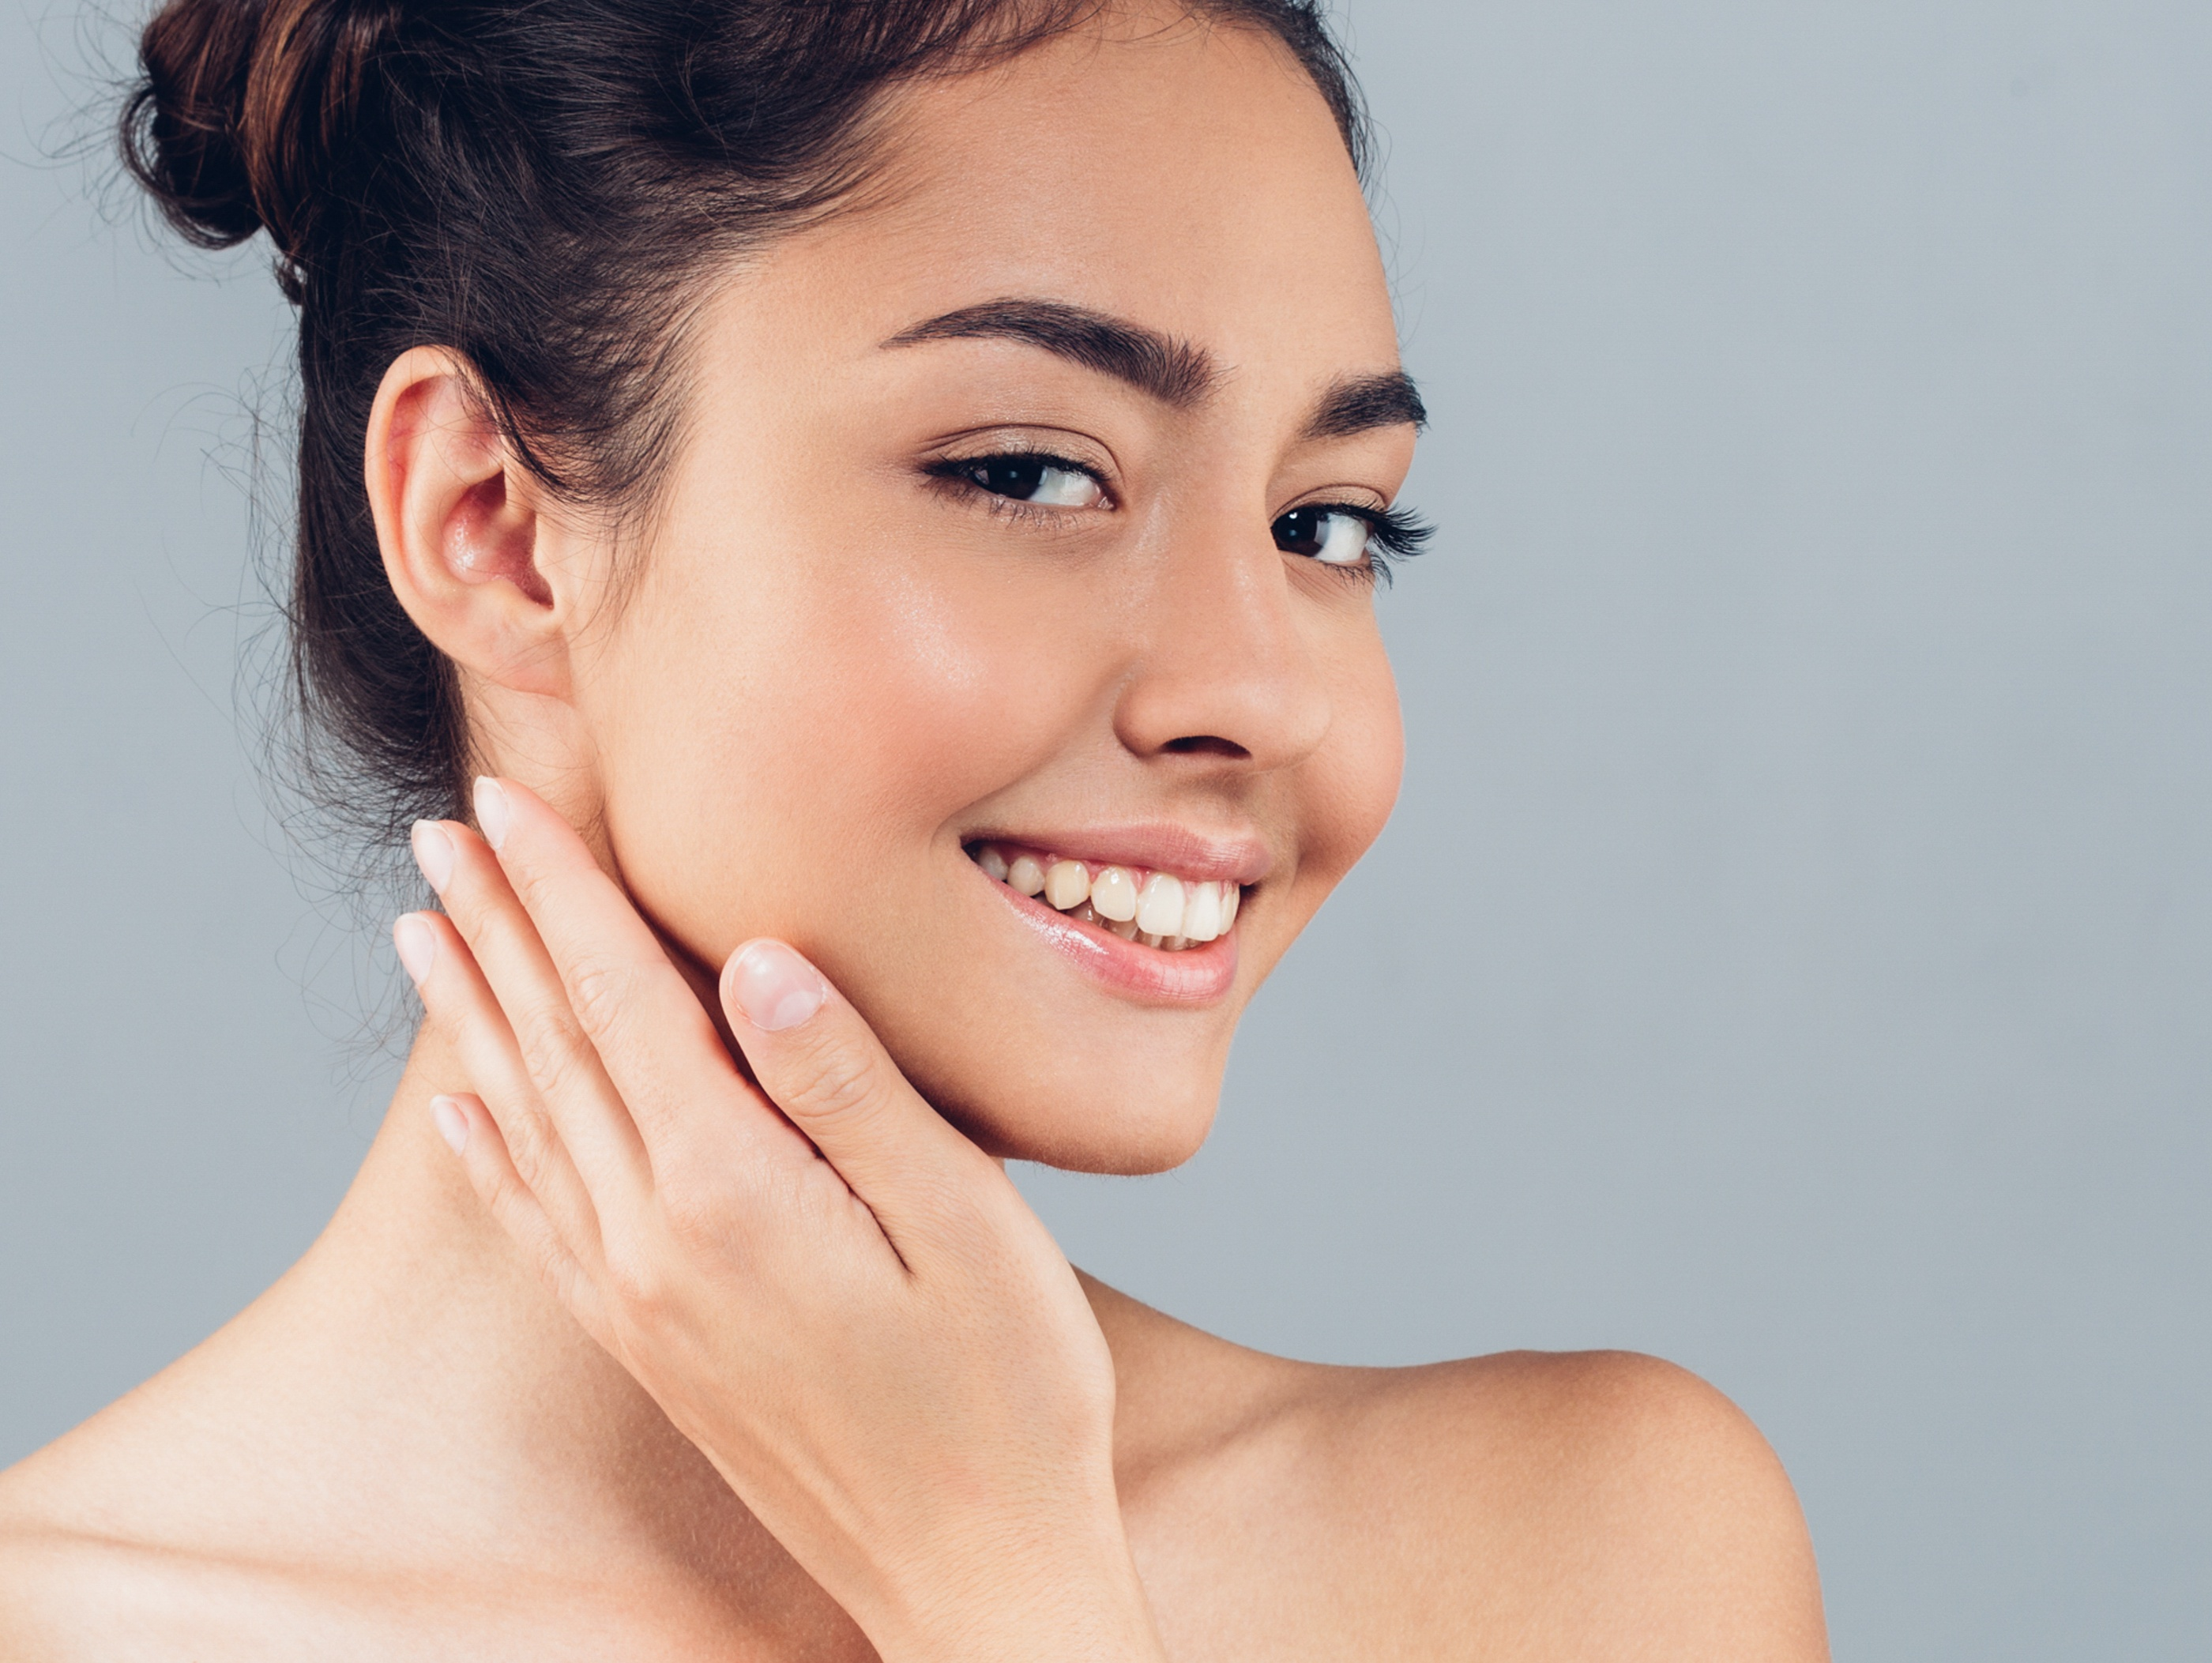 Photo of woman with beautiful skin and complexion after receiving Laser Skin Rejuvenation